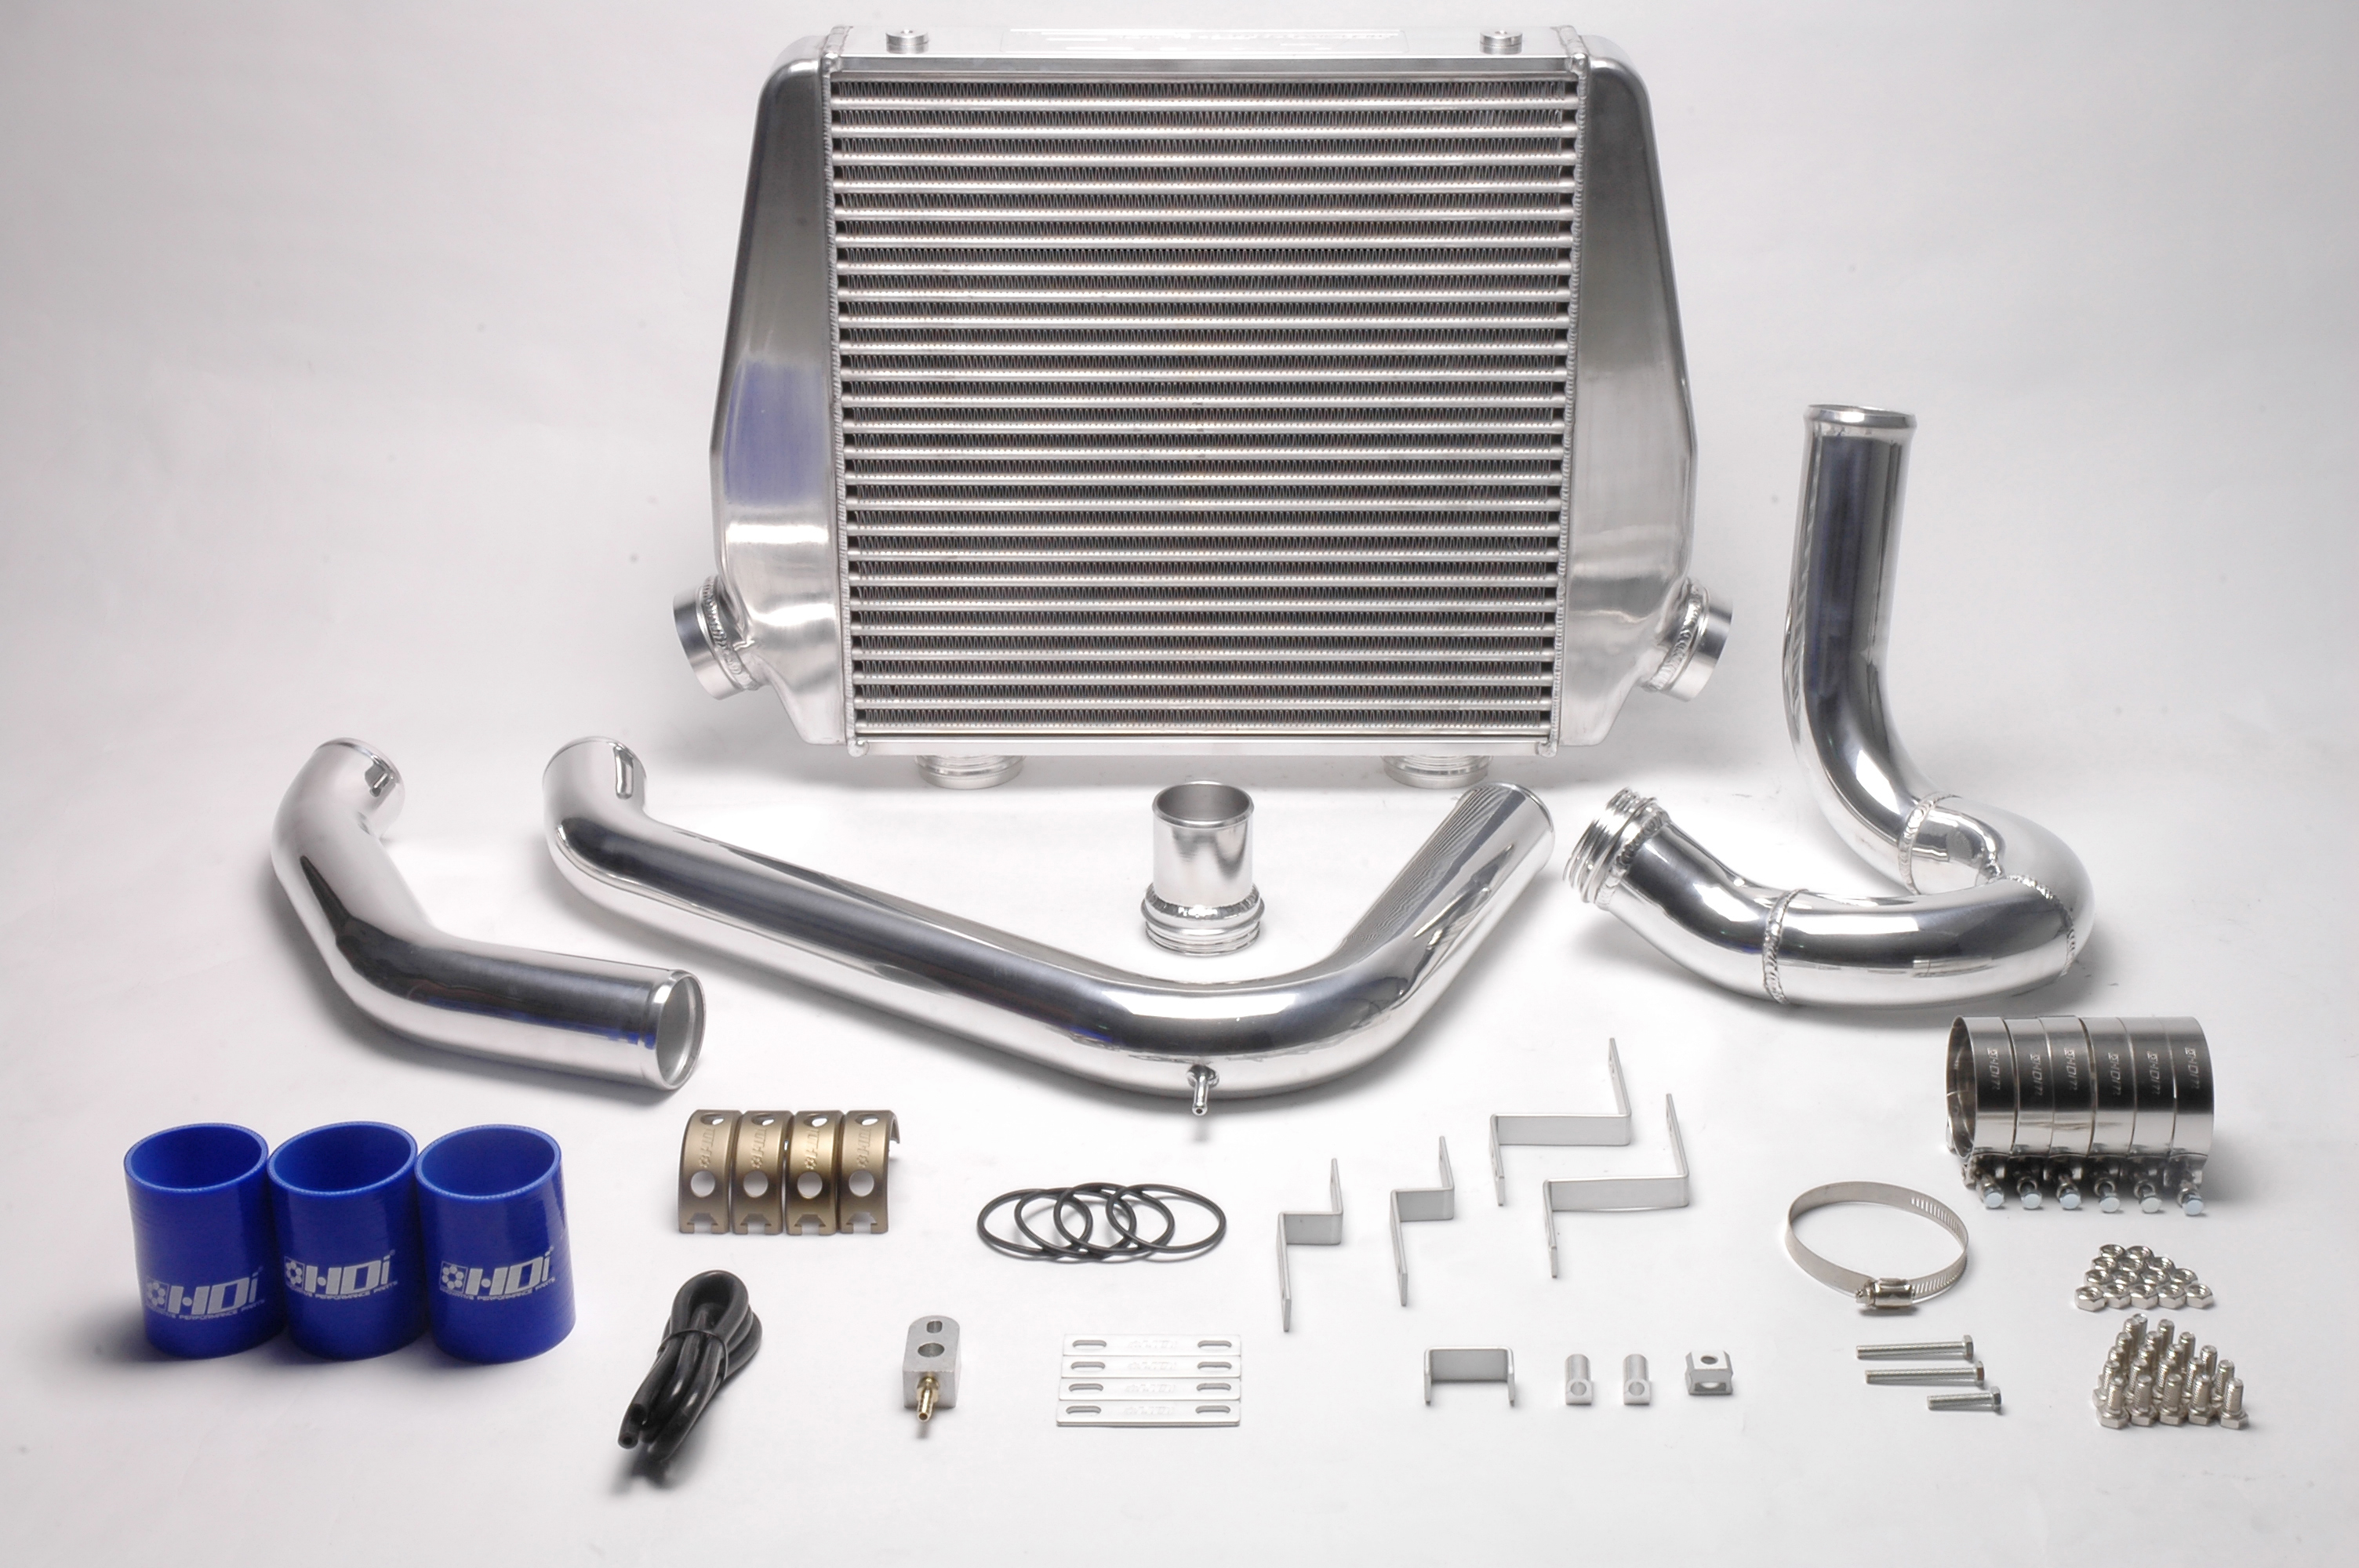 IK-BF-XR6-GT2440-SH INTERCOOLER KIT